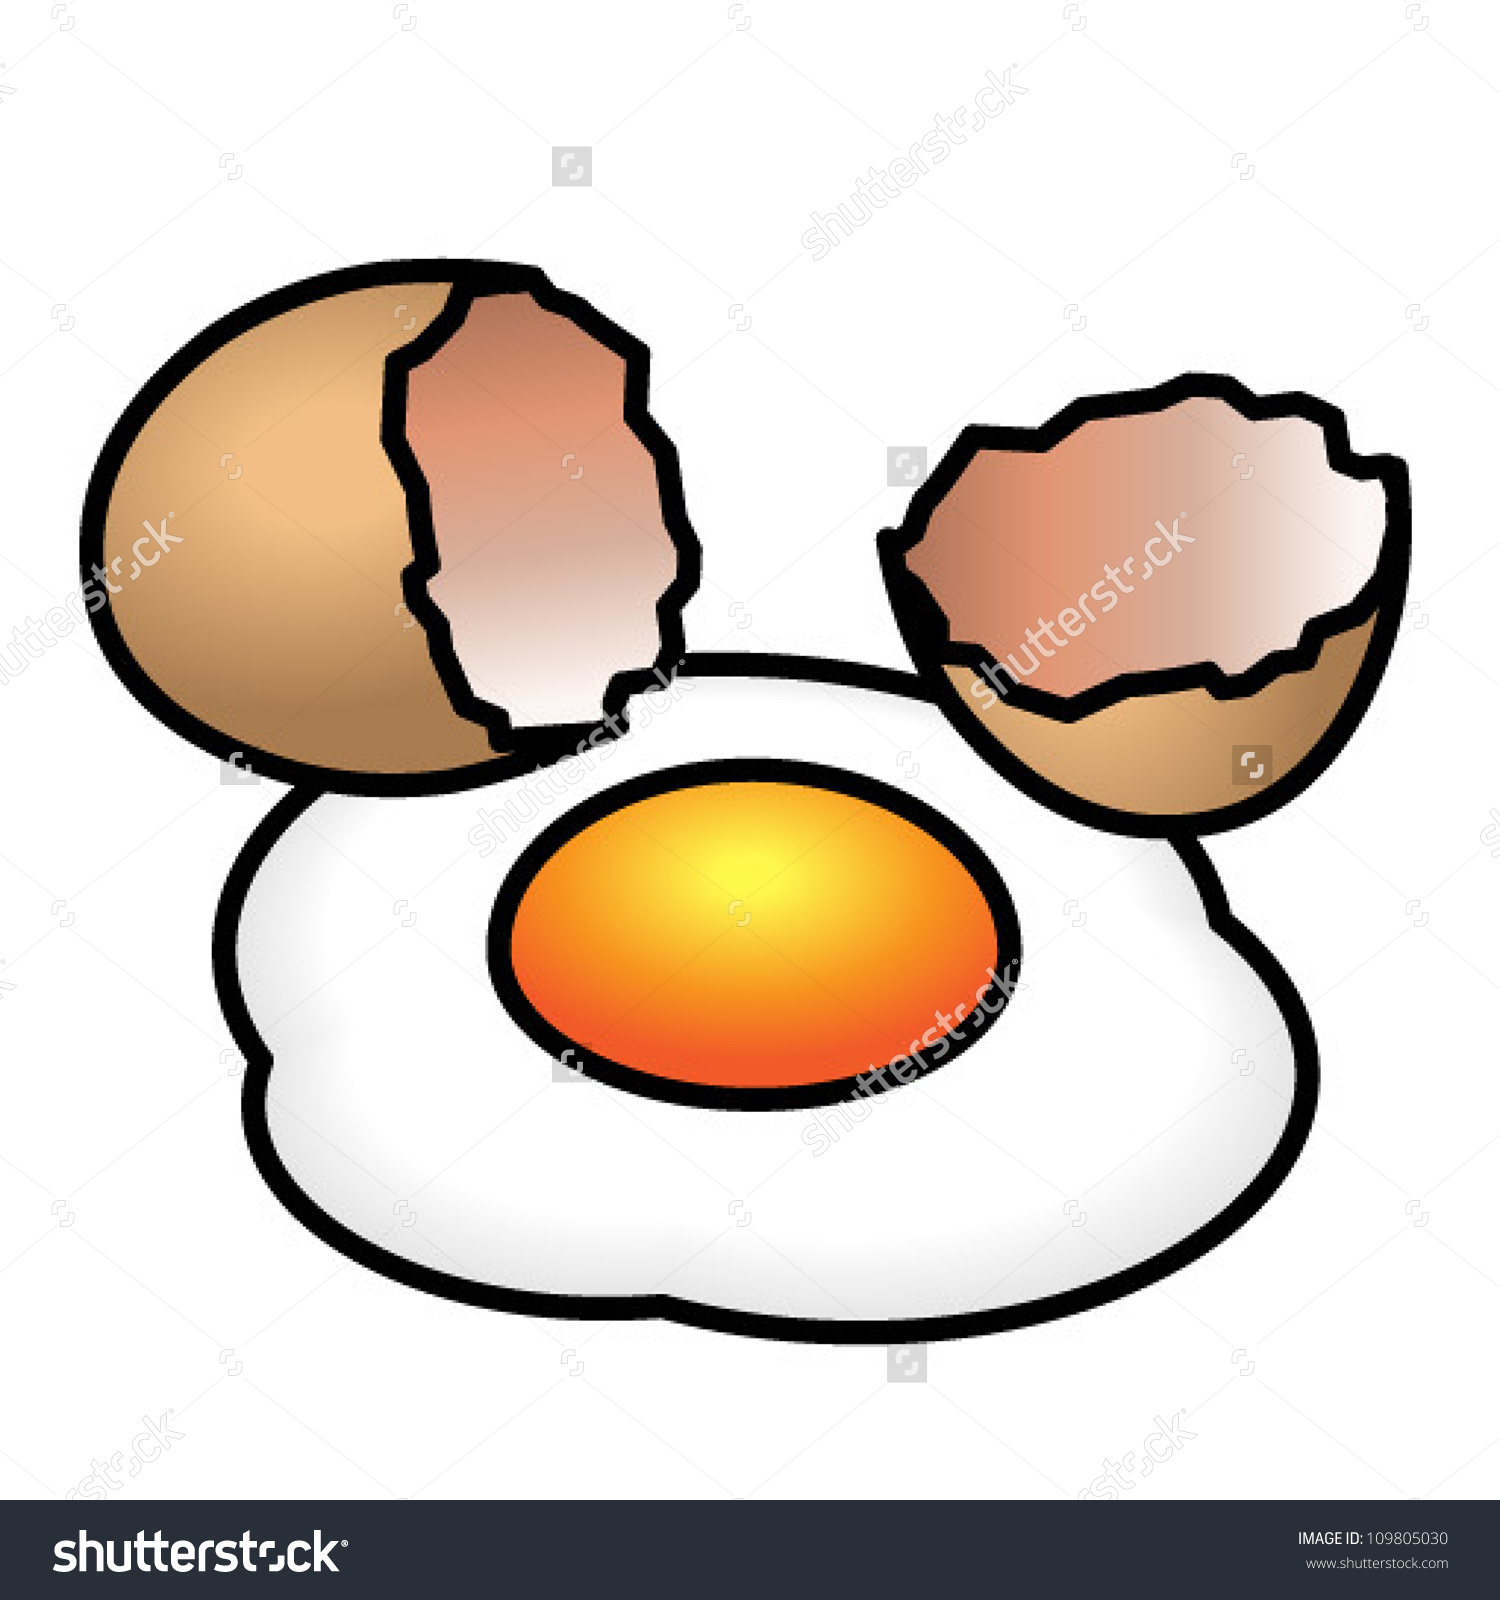 Cracked open egg clipart clipart black and white stock Cracked egg clipart - ClipartFest clipart black and white stock